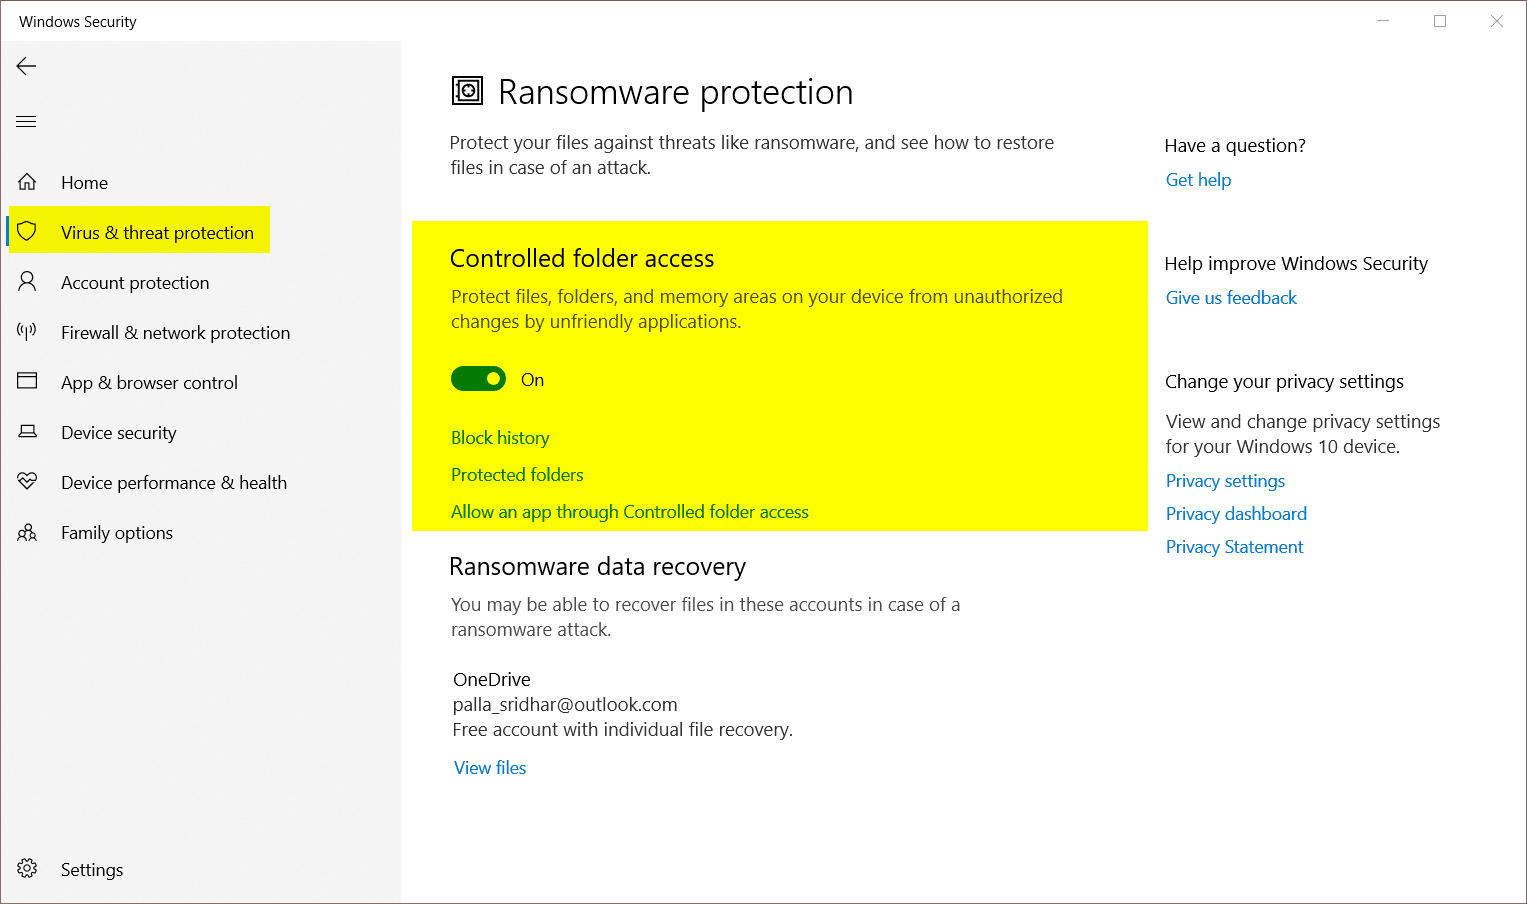 http://server.digimetriq.com/wp-content/uploads/2020/12/1608653294_272_10-Robust-features-of-Microsoft-Defender-for-Extra-Protection-of.png